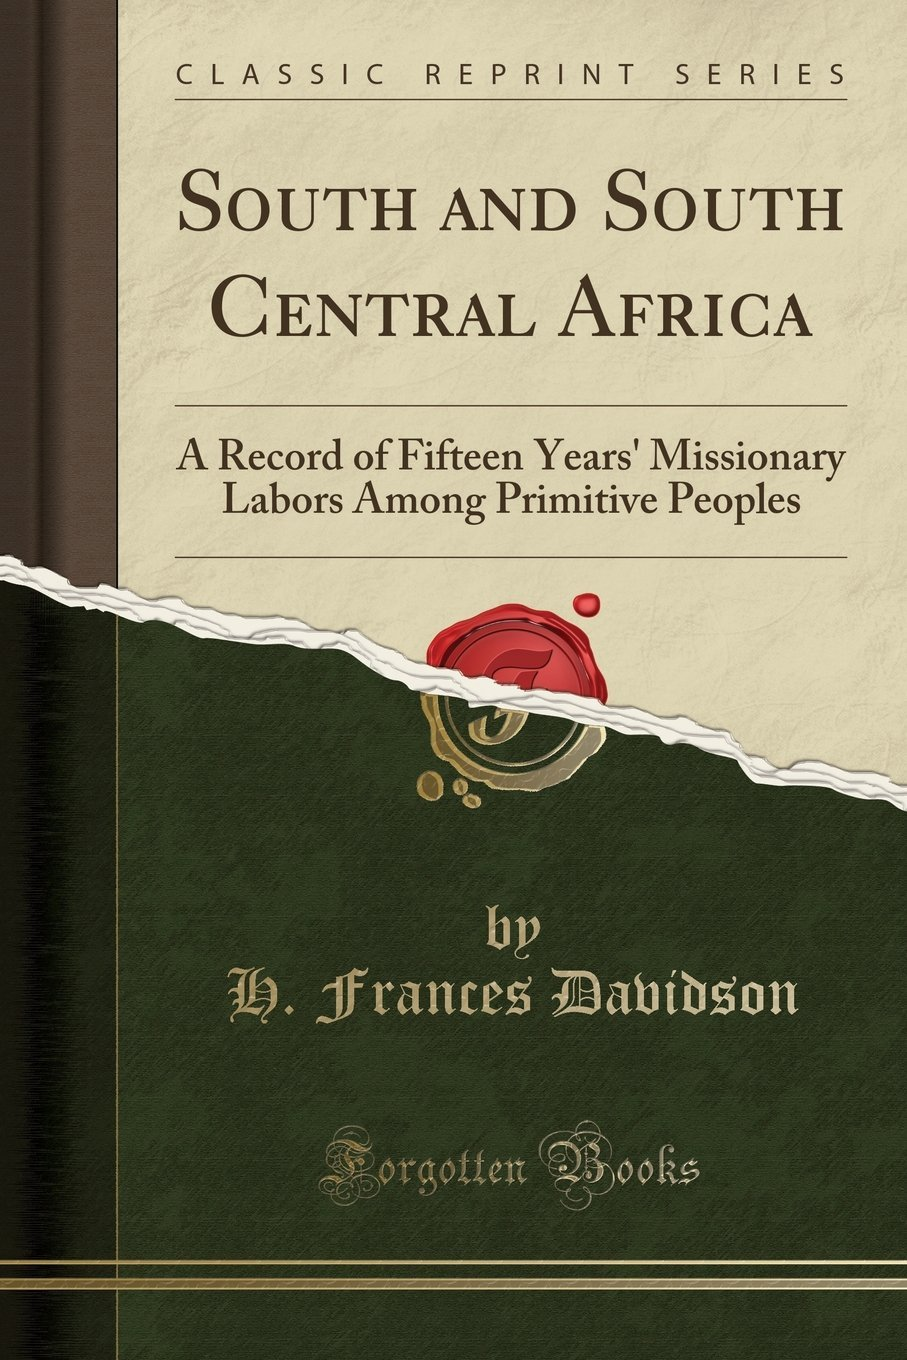 South and South Central Africa: A Record of Fifteen Years' Missionary Labors Among Primitive Peoples (Classic Reprint) ebook